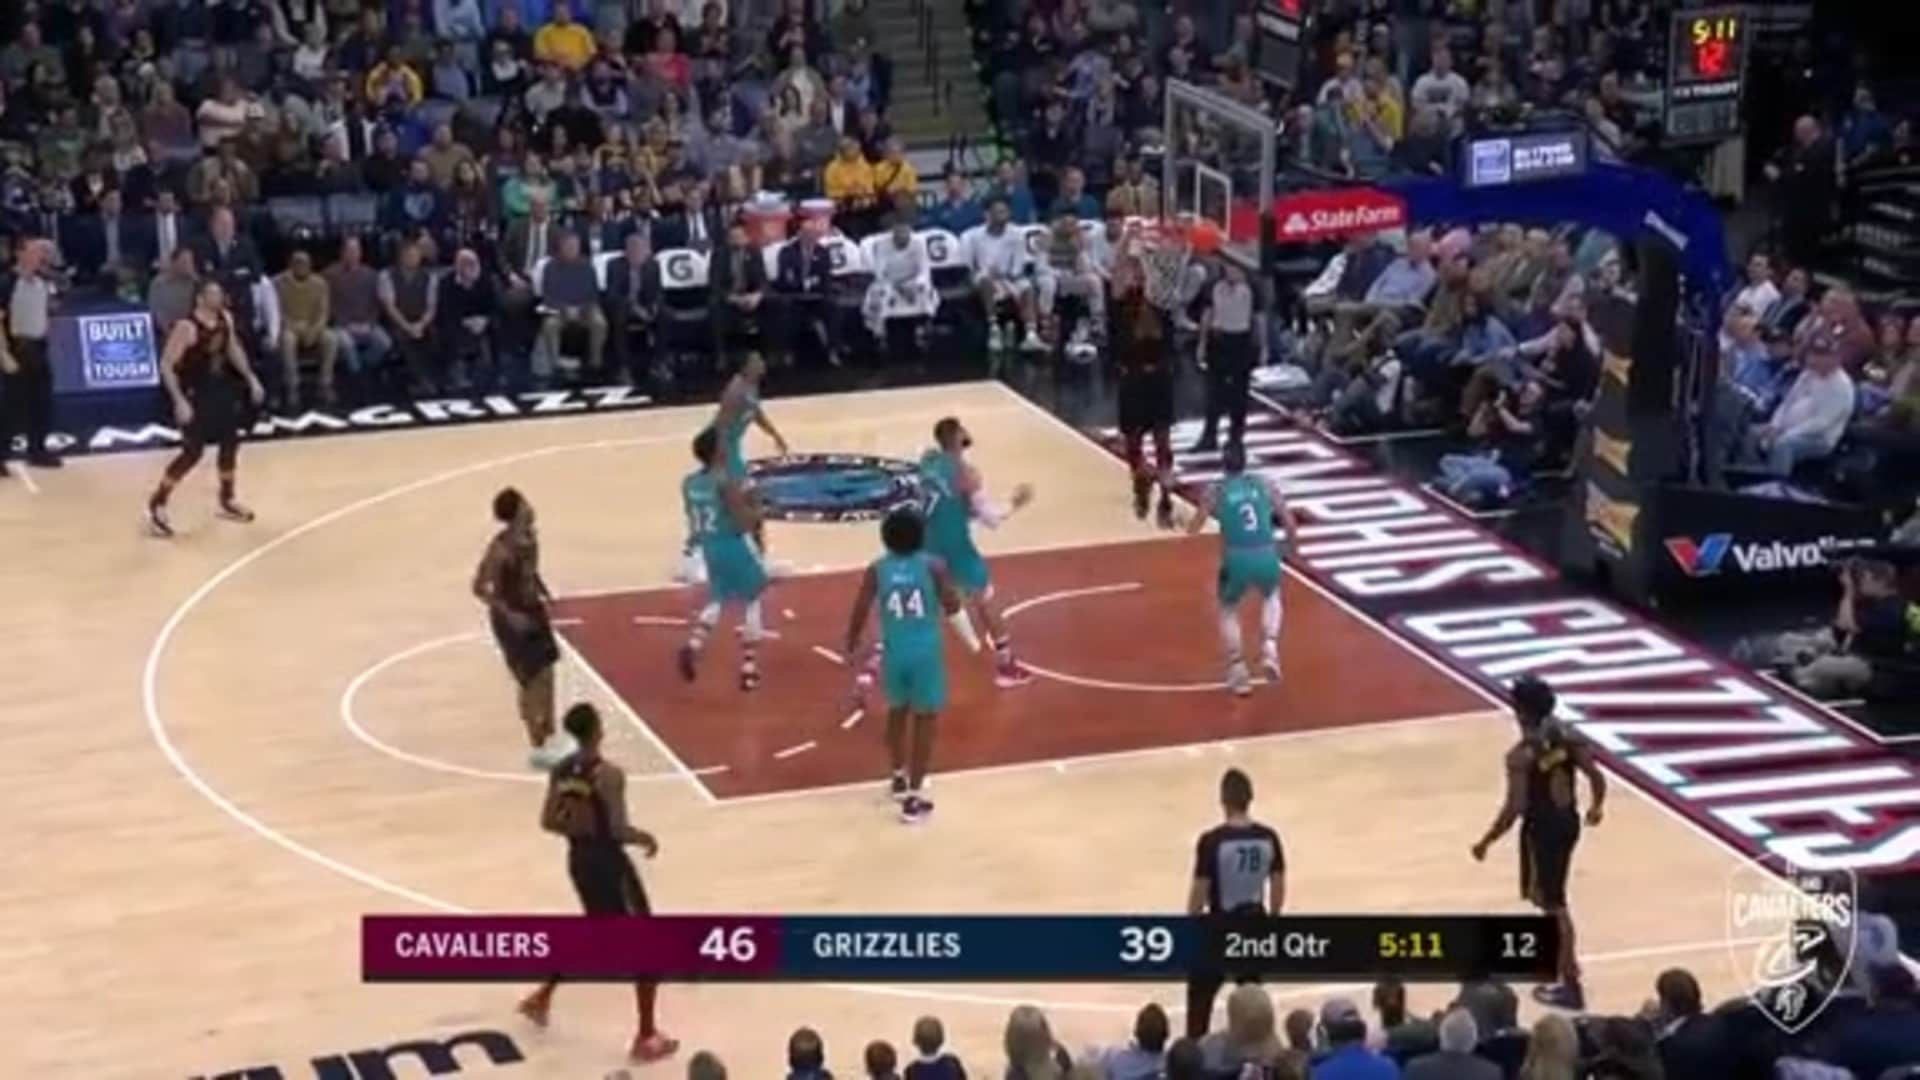 Garland Finds Nance for the Alley-Oop